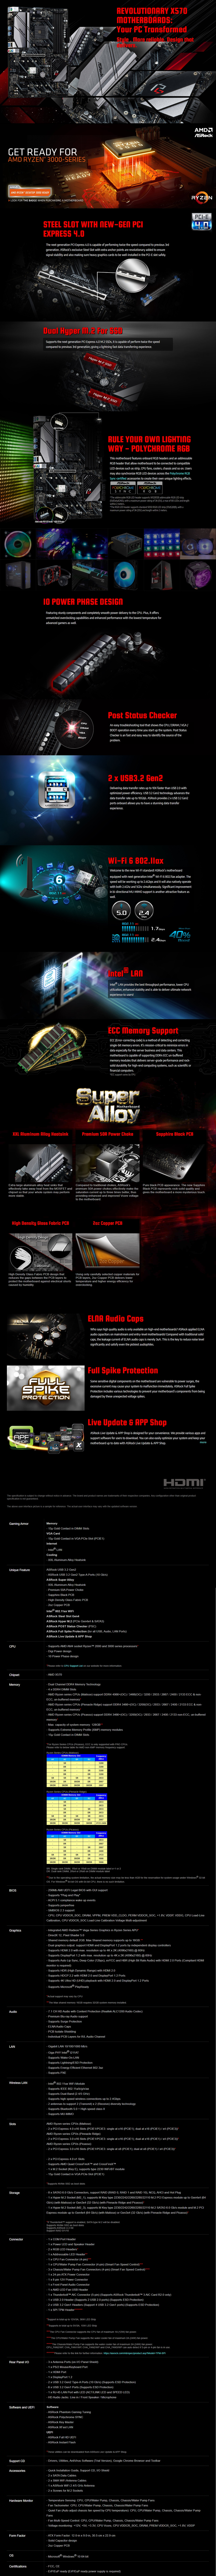 A large marketing image providing additional information about the product ASRock X570 Phantom Gaming WiFi AX AM4 ATX Desktop Motherboard - Additional alt info not provided